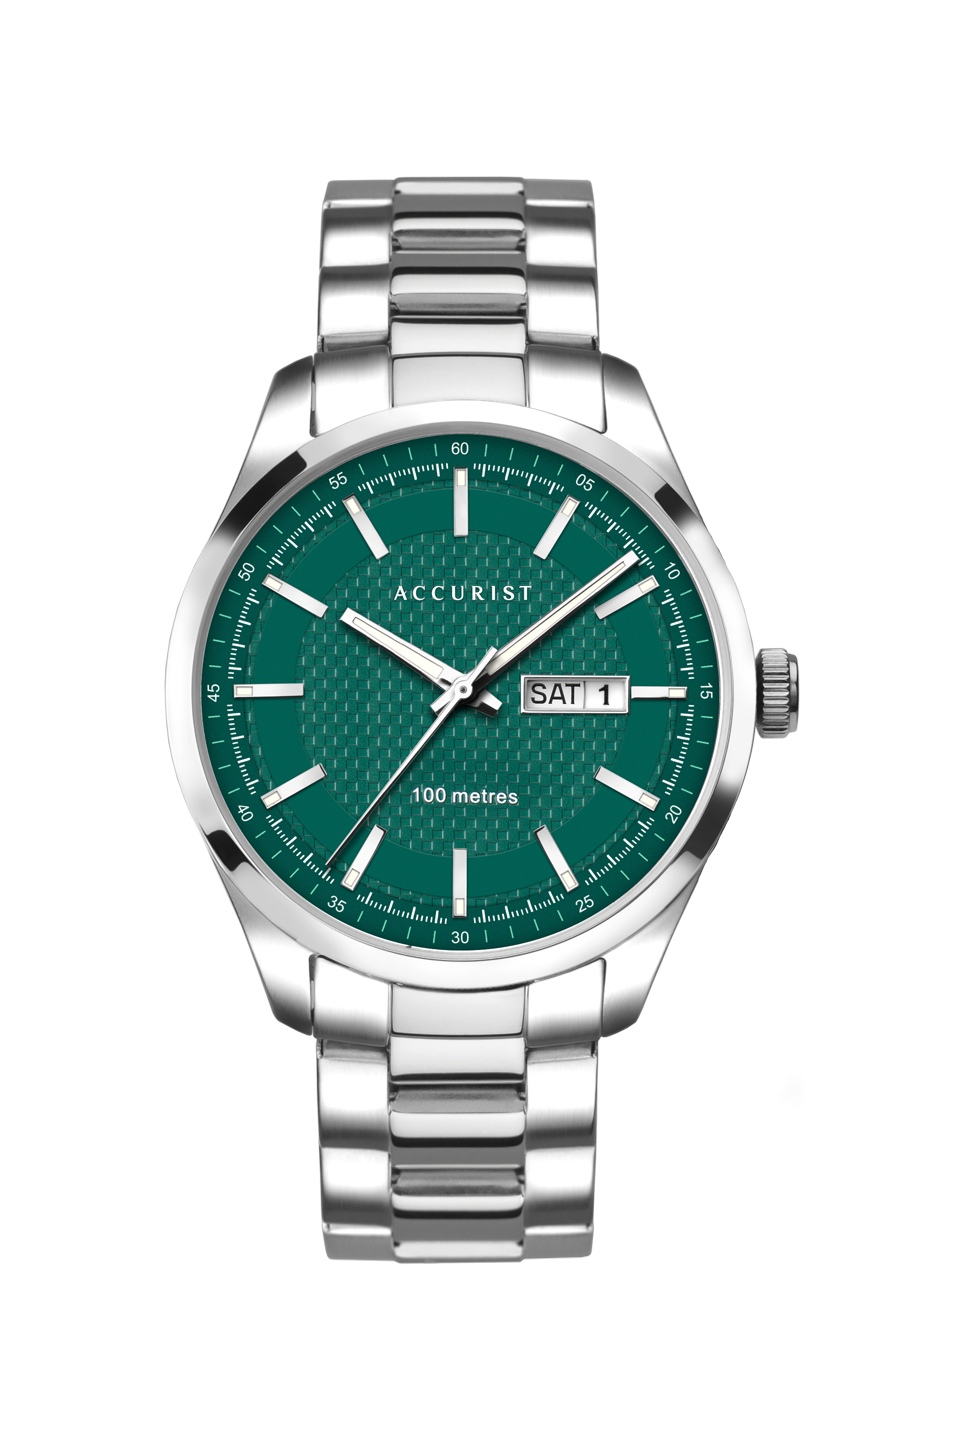 Treat your loved one for Valentine's Day to this men's classic watch while saving £16